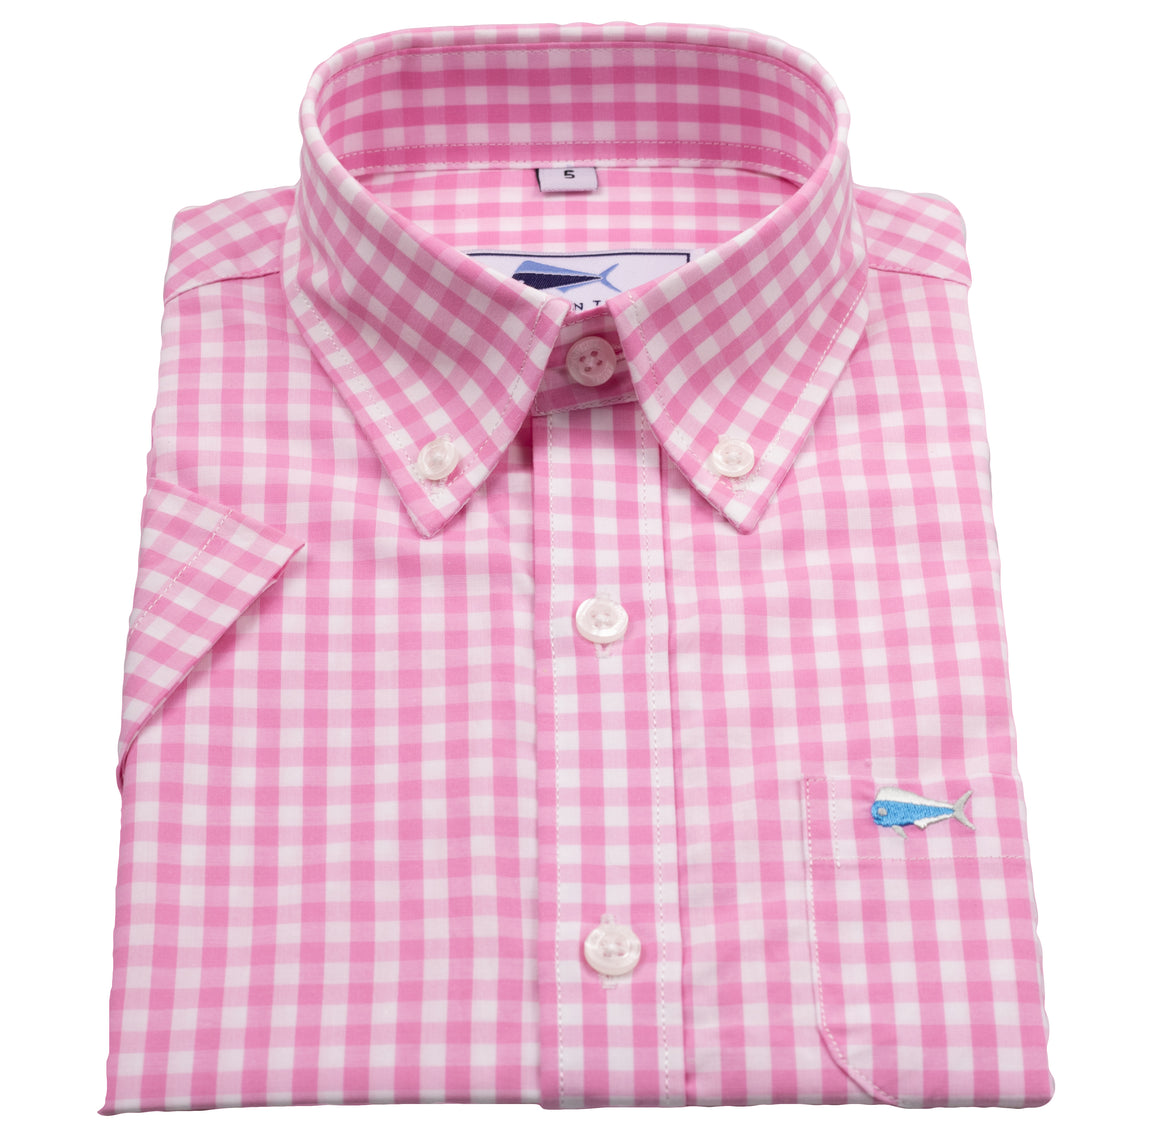 Youth SS Woven Sport Shirt - Pink Gingham